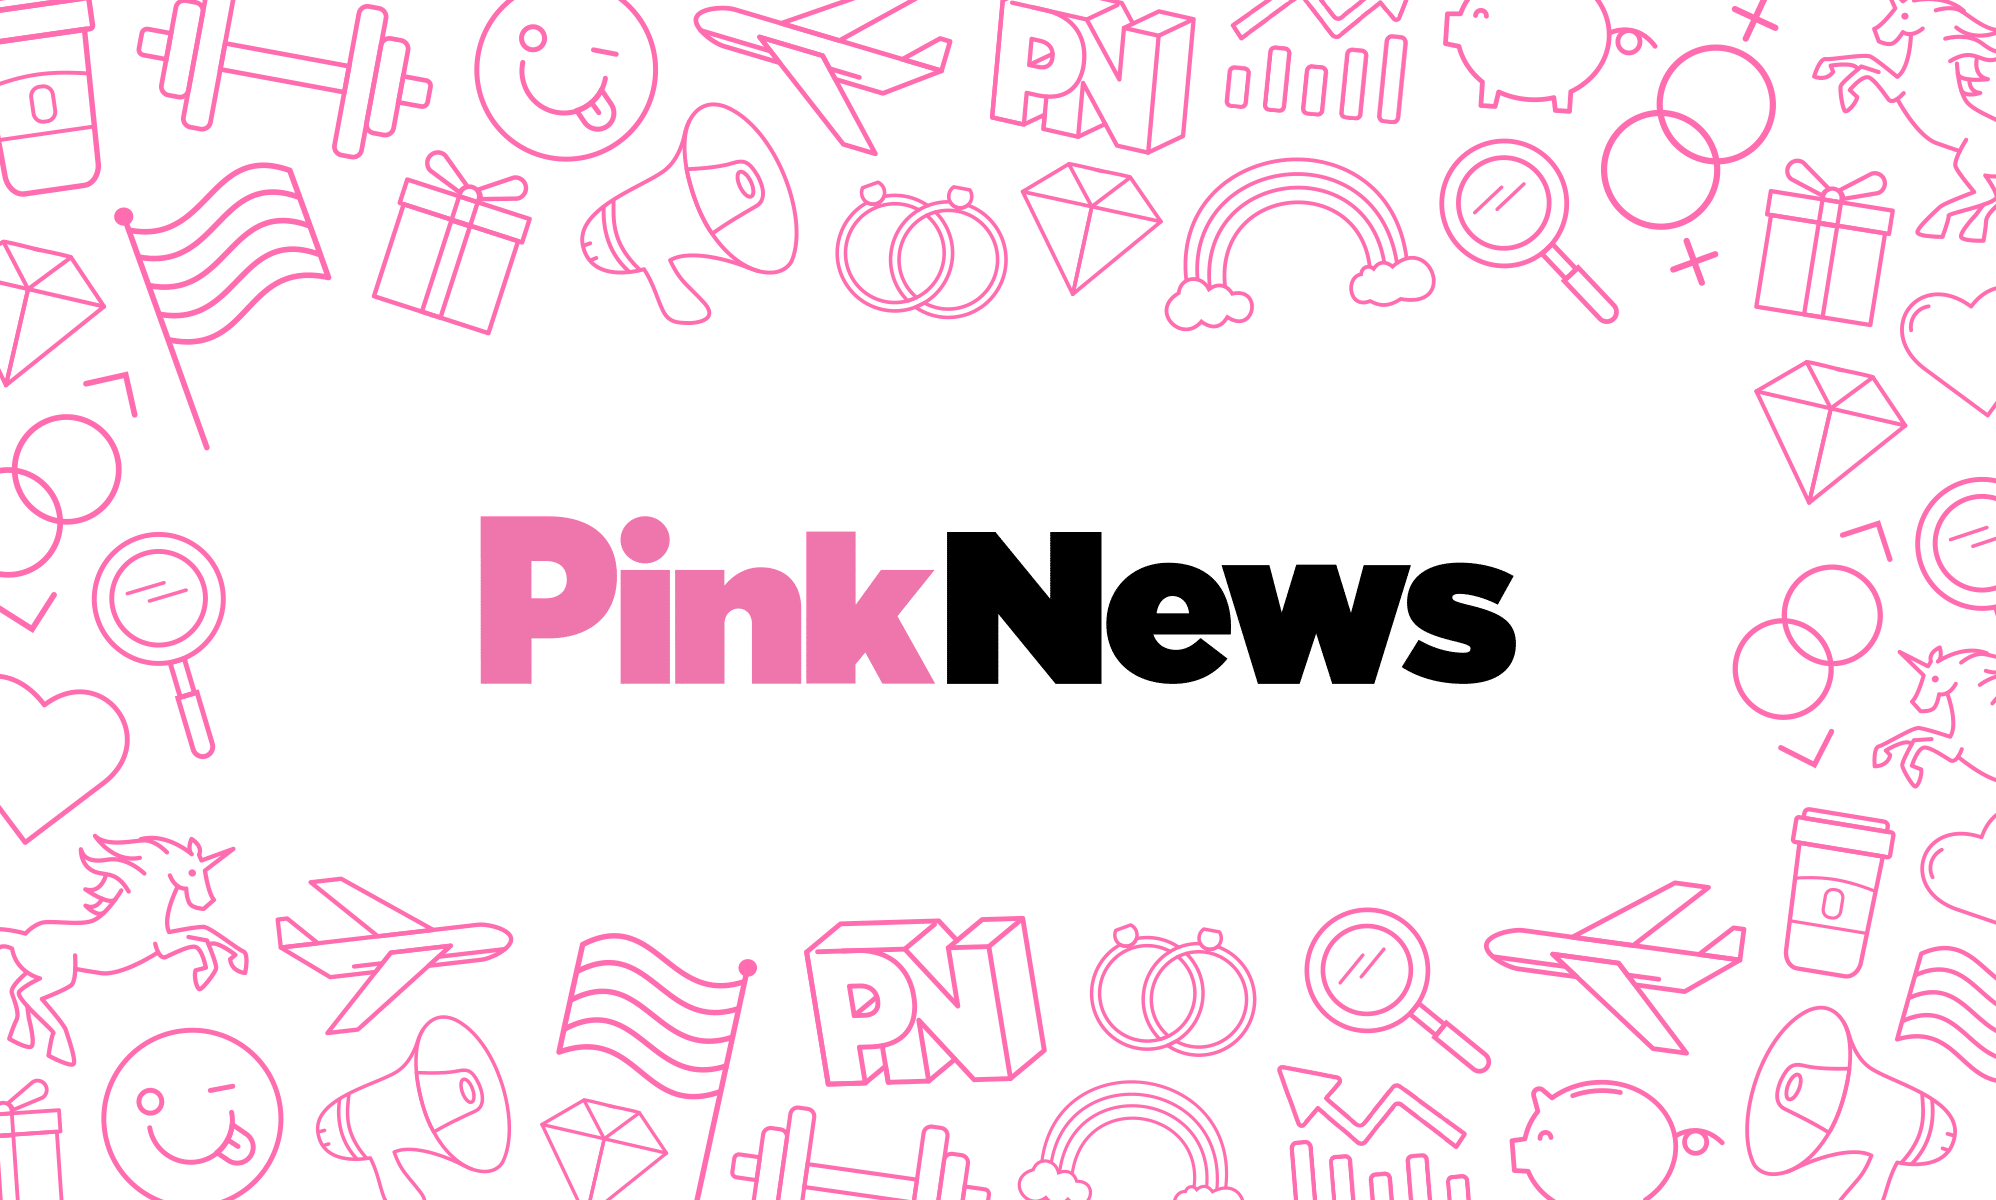 Submit your questions for Natalie Bennett's PinkNews readers' Q&A